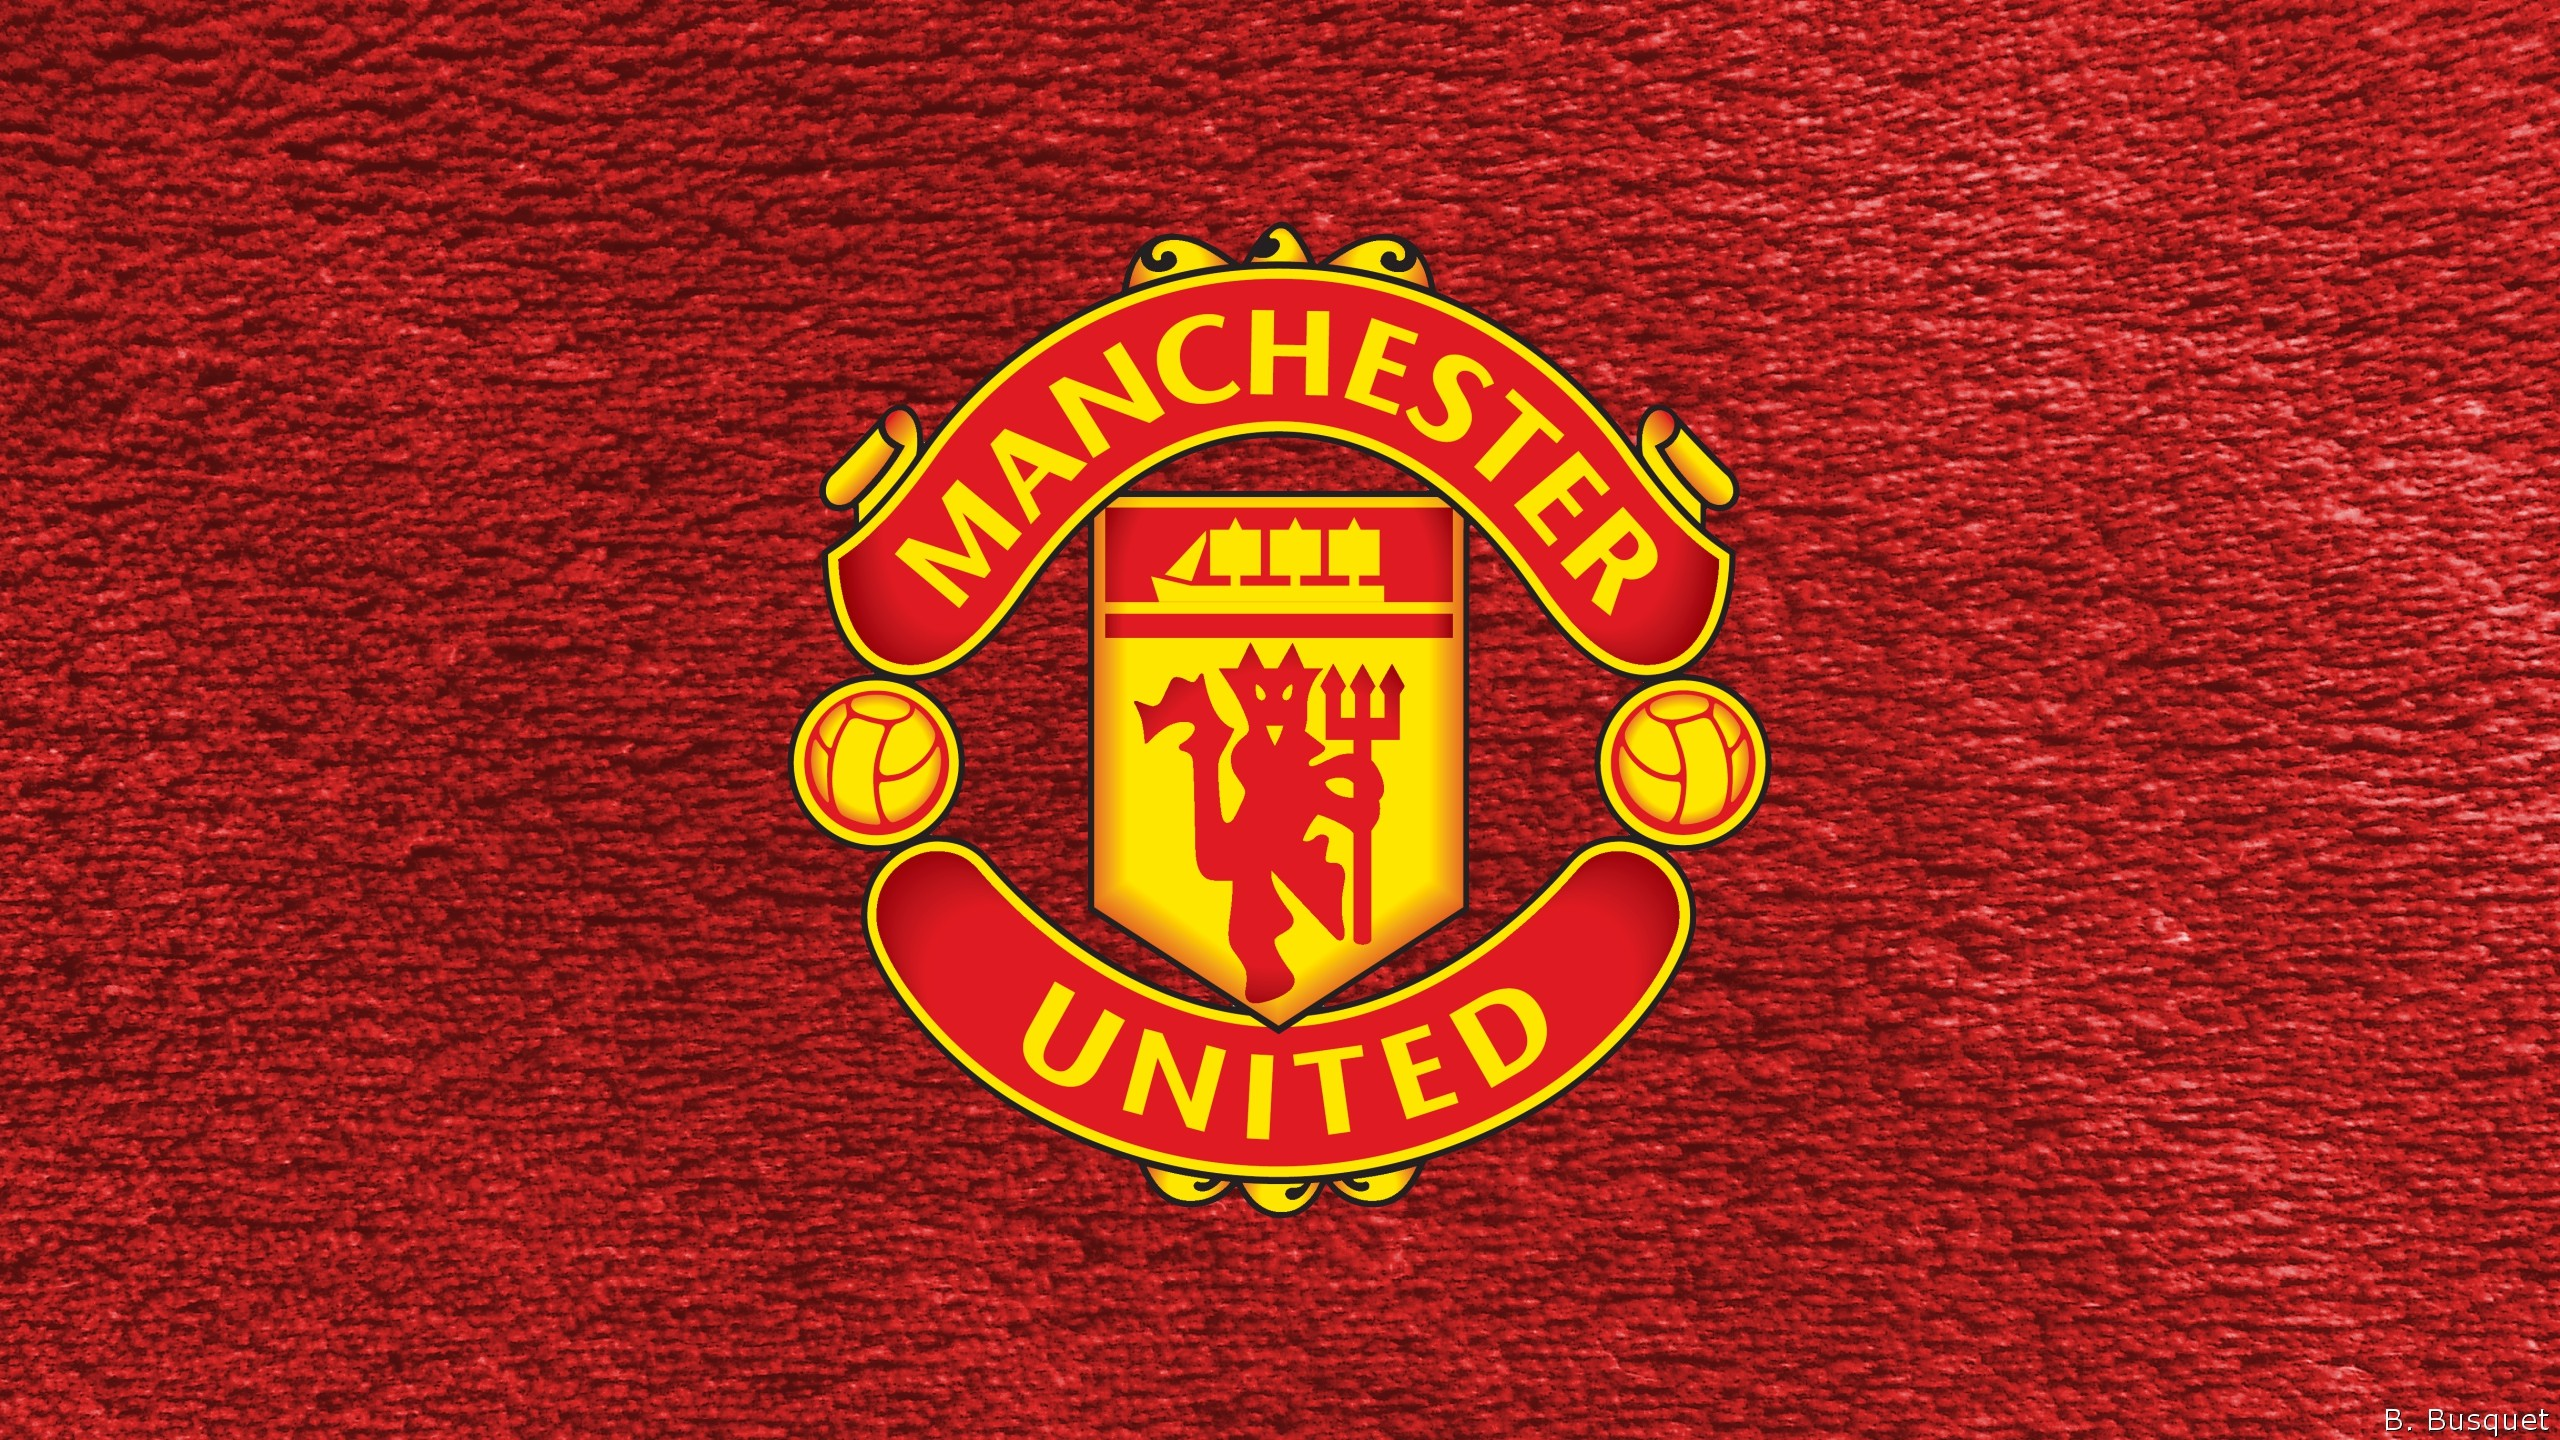 manchester united wallpapers barbaras hd wallpapers. Black Bedroom Furniture Sets. Home Design Ideas